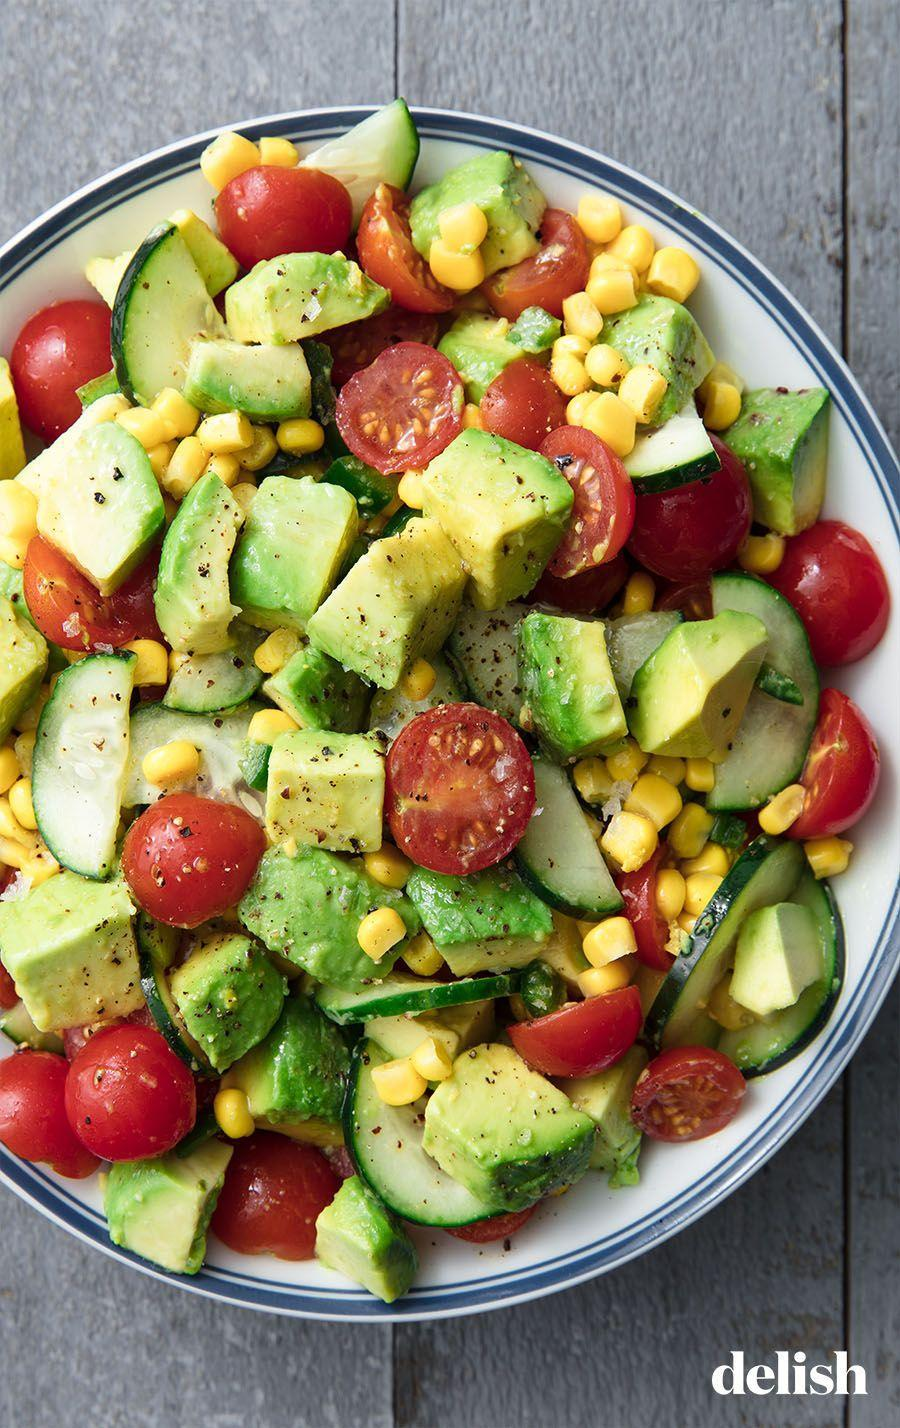 """<p>The fresh, easy salad you'll be making once a week.</p><p>Get the recipe from <a href=""""https://www.delish.com/cooking/recipe-ideas/a19872947/avocado-tomato-salad-recipe/"""" rel=""""nofollow noopener"""" target=""""_blank"""" data-ylk=""""slk:Delish"""" class=""""link rapid-noclick-resp"""">Delish</a>.</p>"""